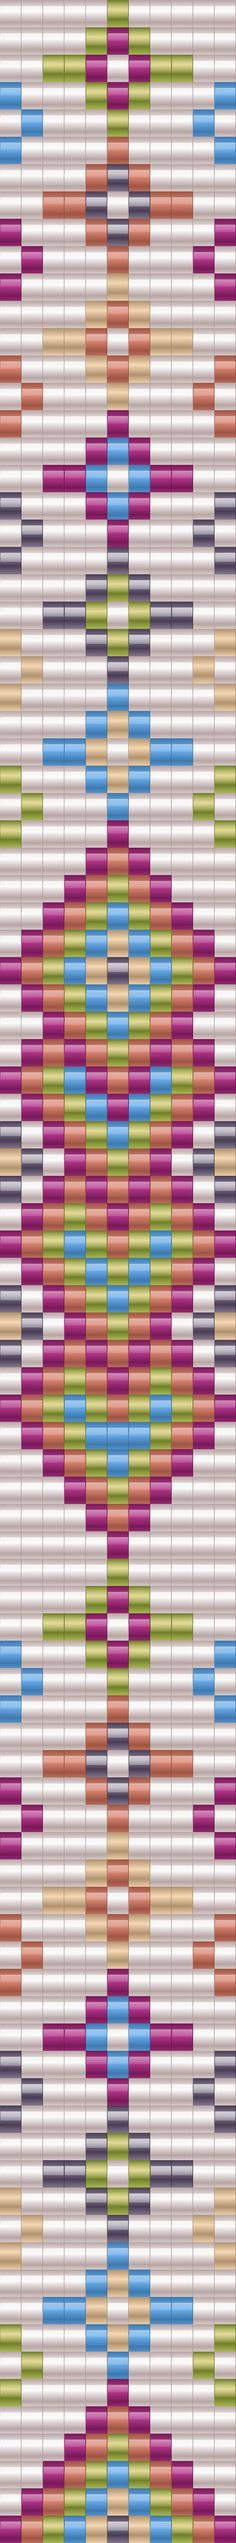 free beading patterns | Posted in Bead Weaving Tagged free bead patterns